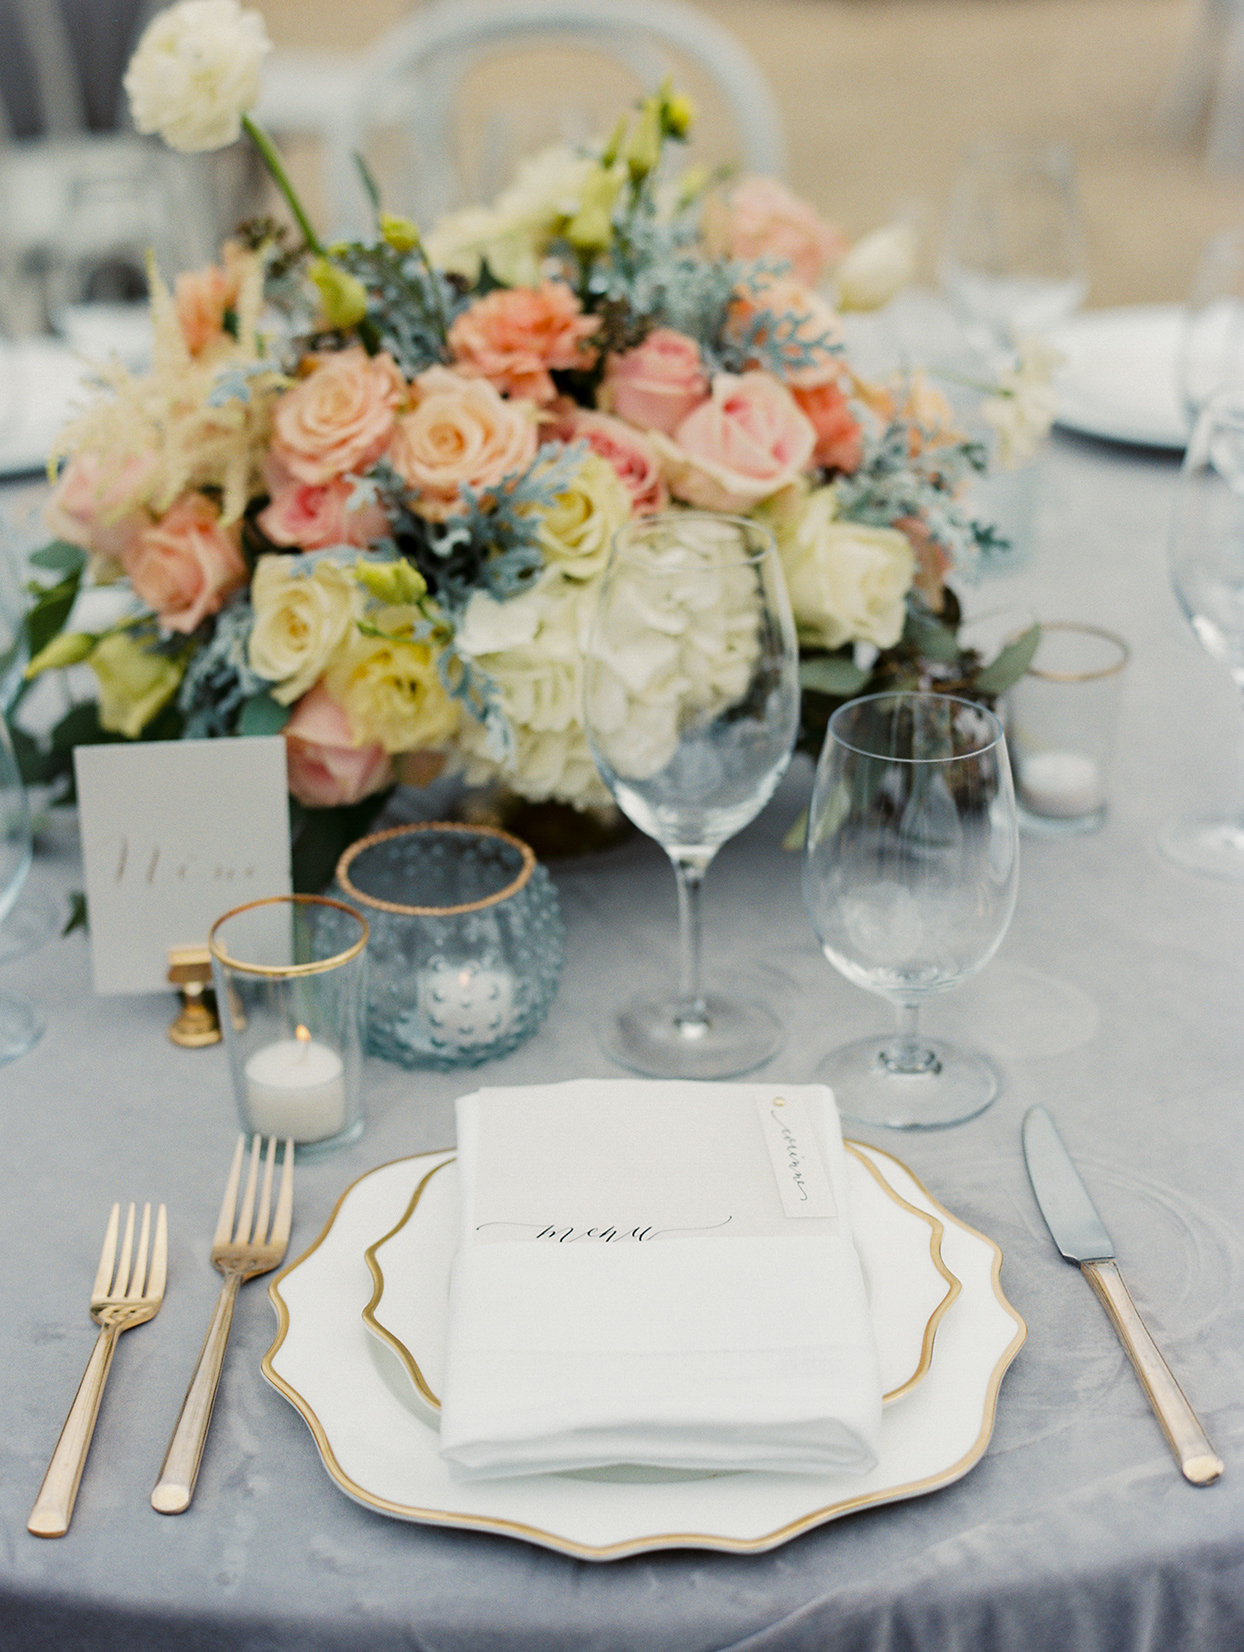 mika steve wedding place setting with blue and pink flowers